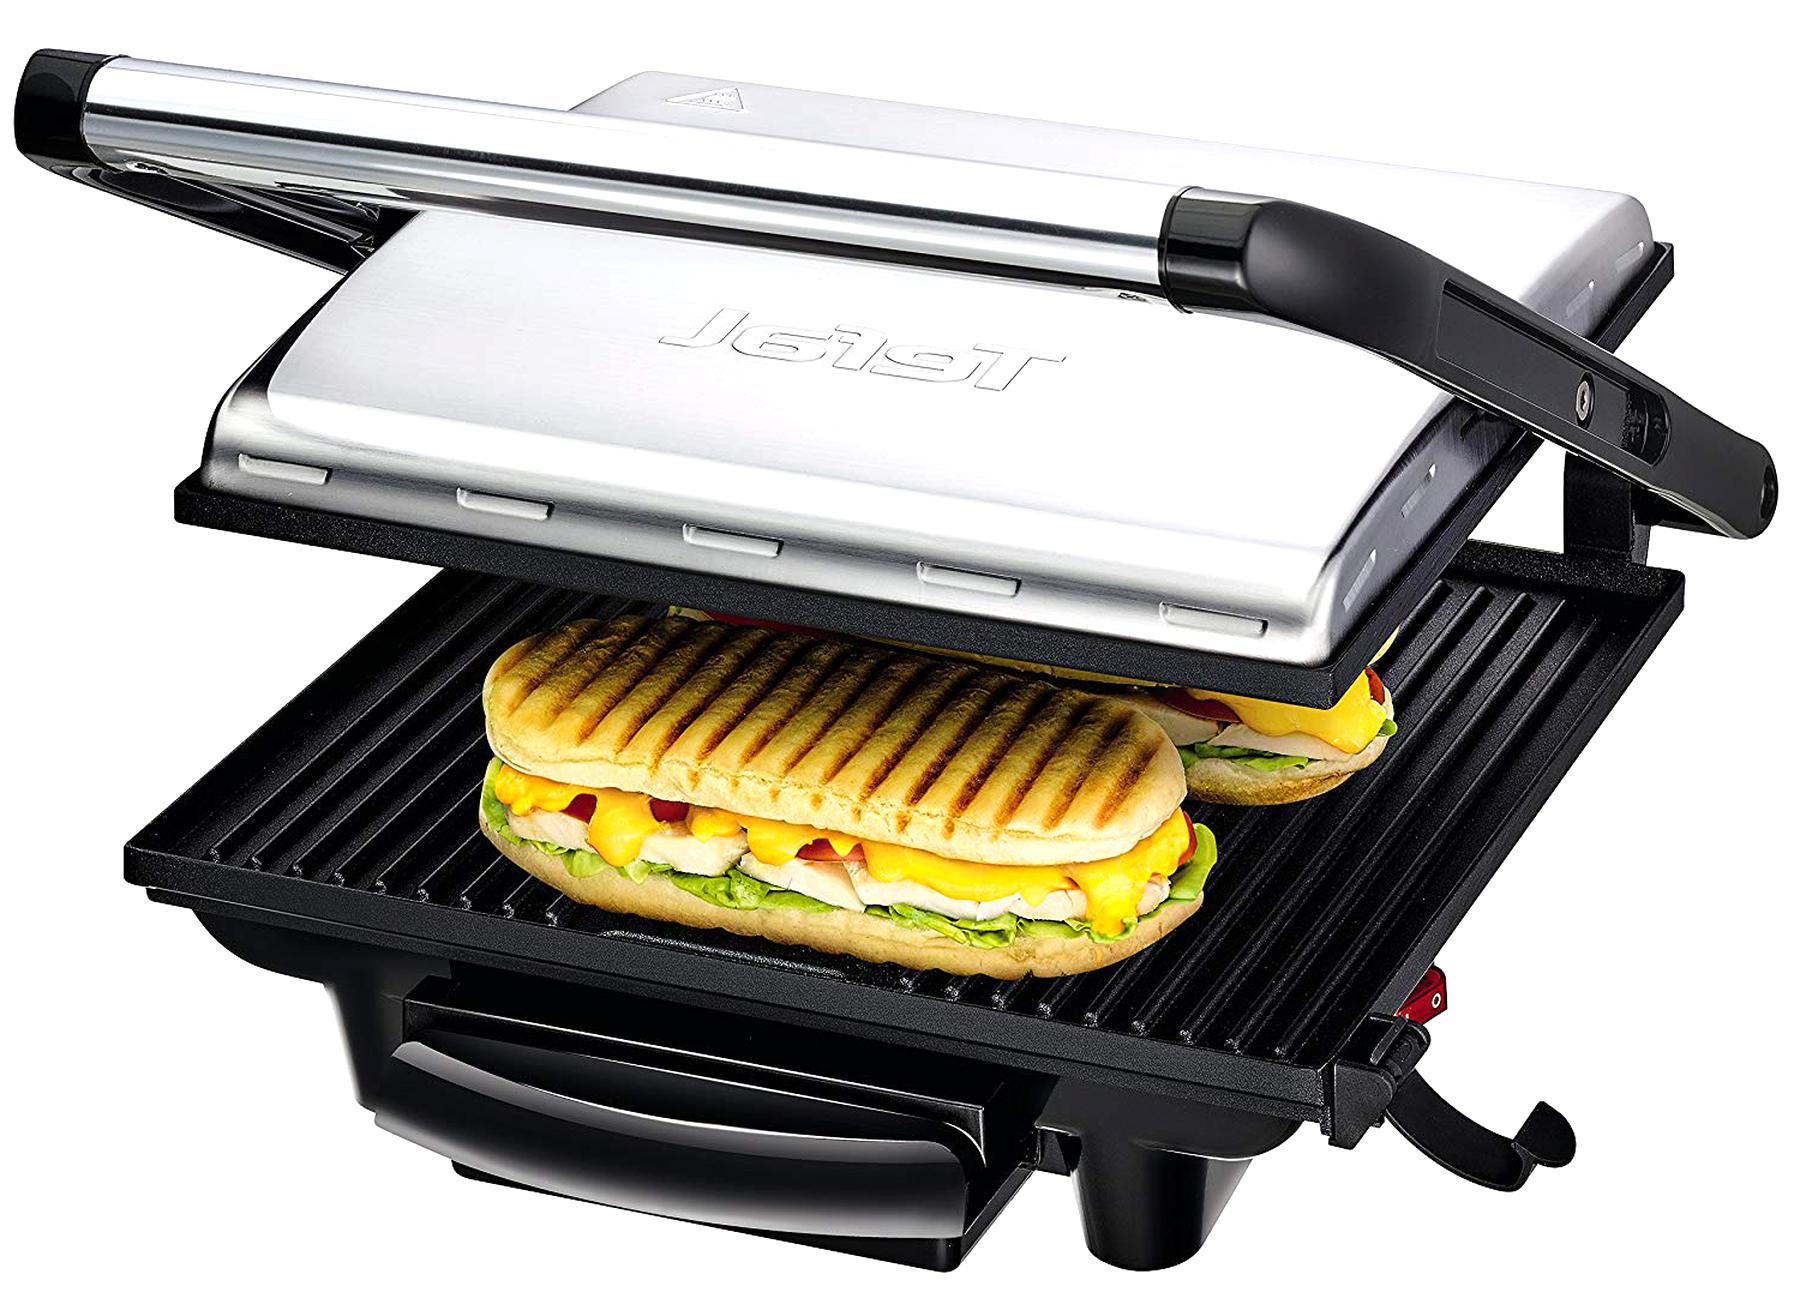 tefal-gril-panini-grill-gc241d12